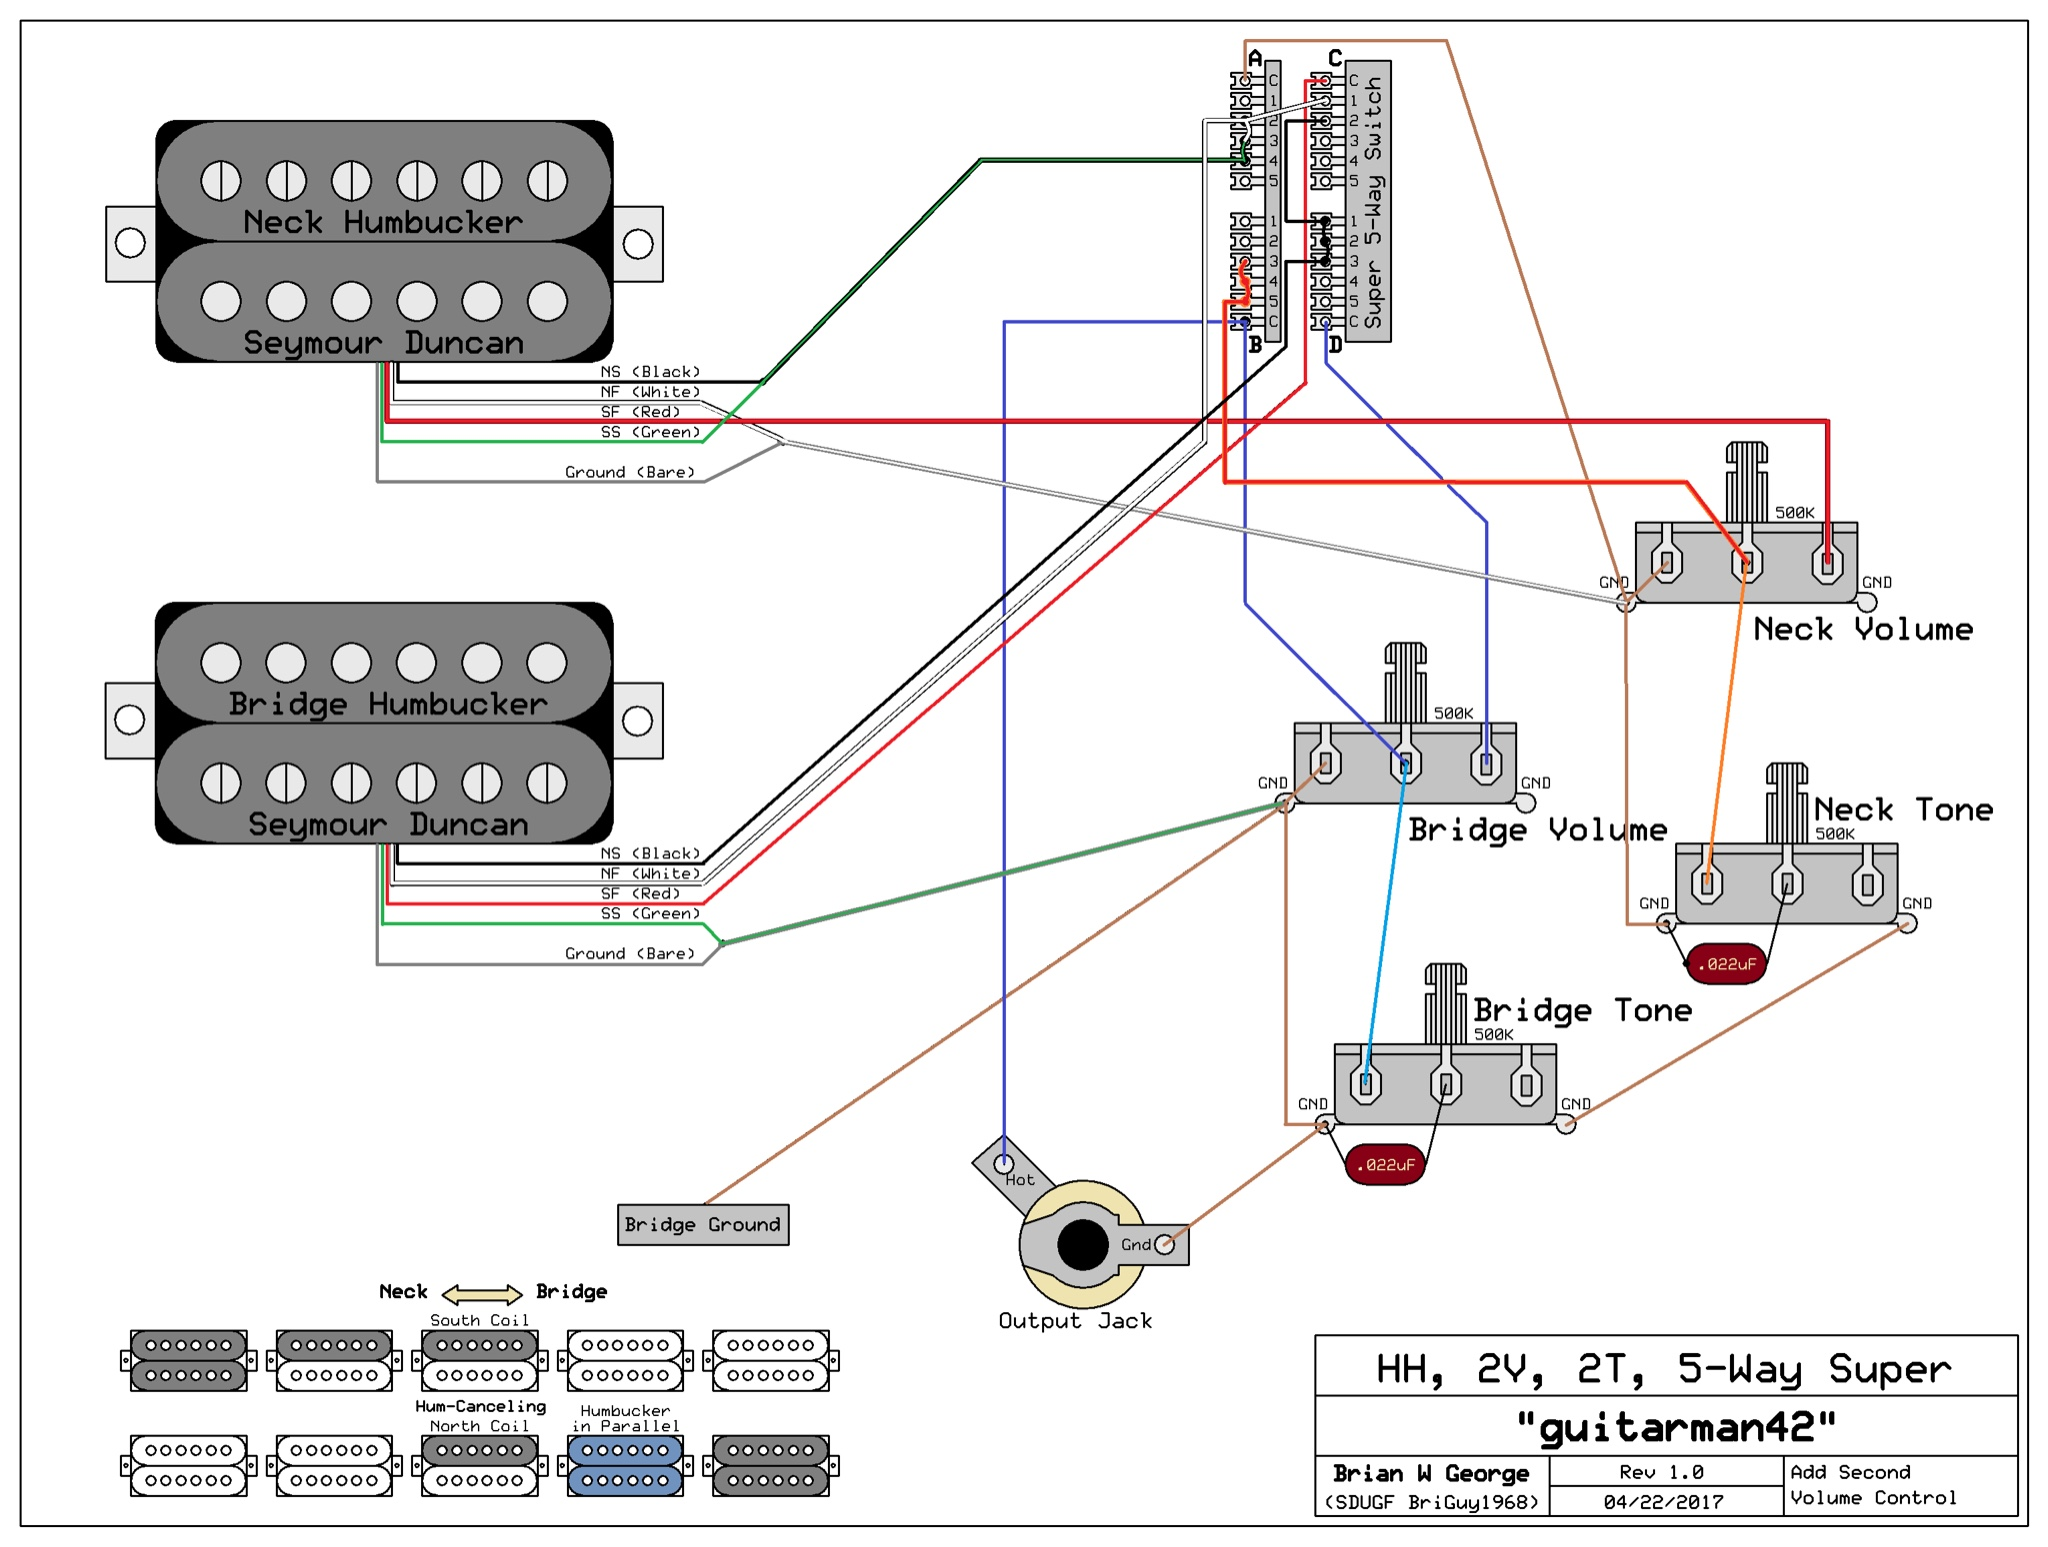 Seymour Duncan Invader Pickup Wiring Diagram